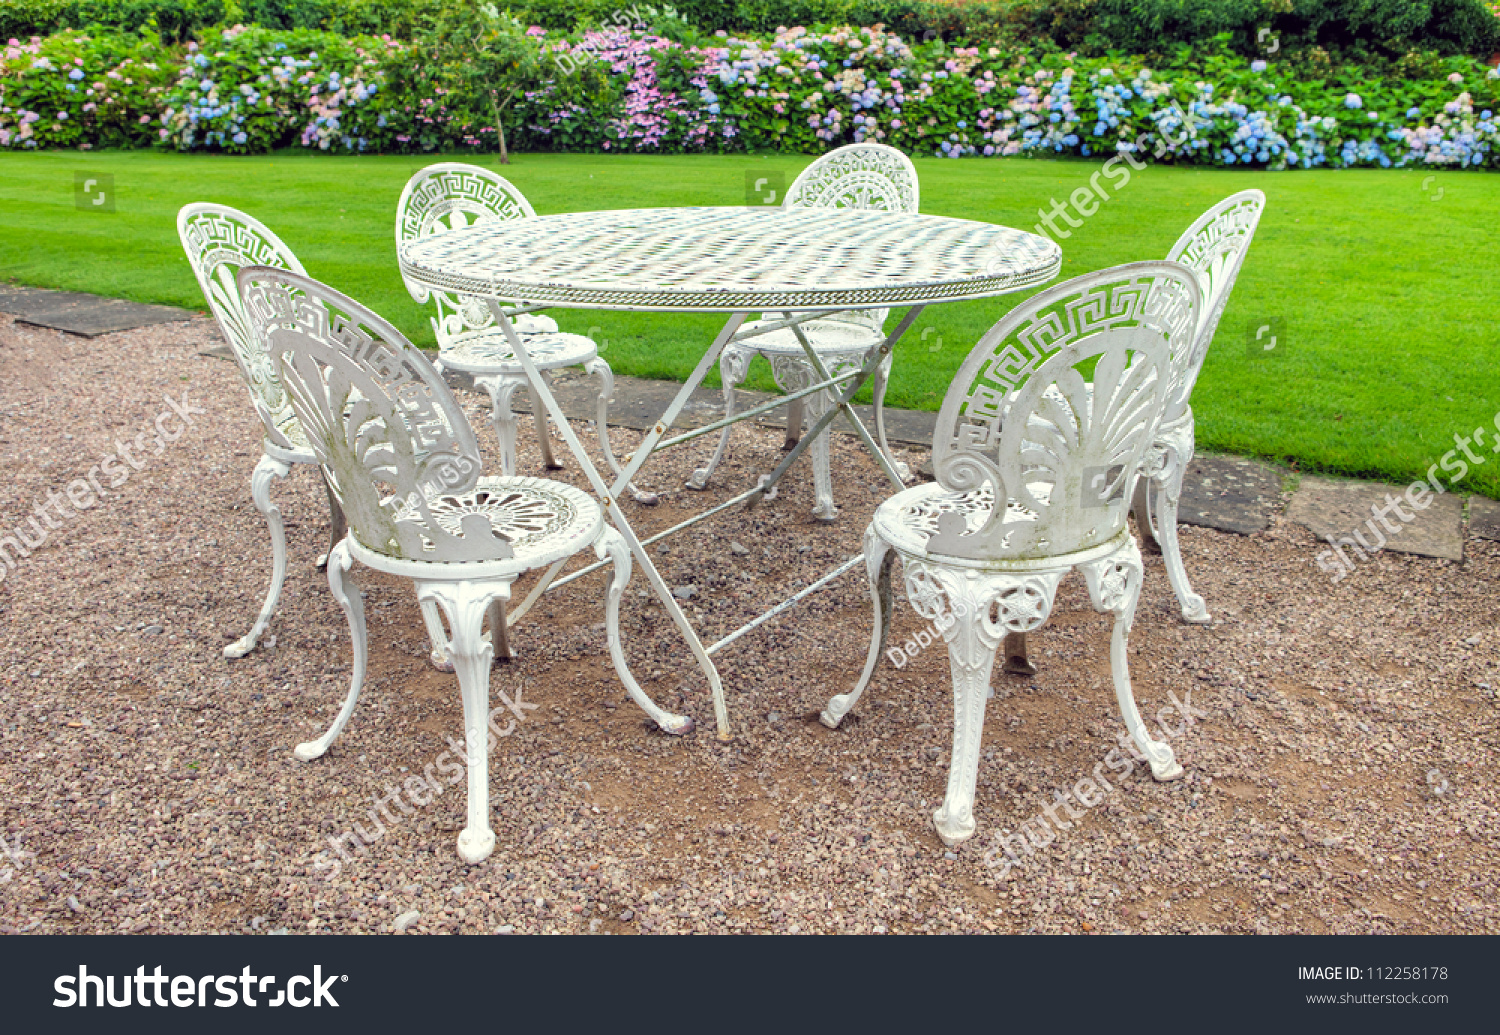 Vintage wrought iron table - Vintage Wrought Iron Garden Table And Six Chairs In An English Garden